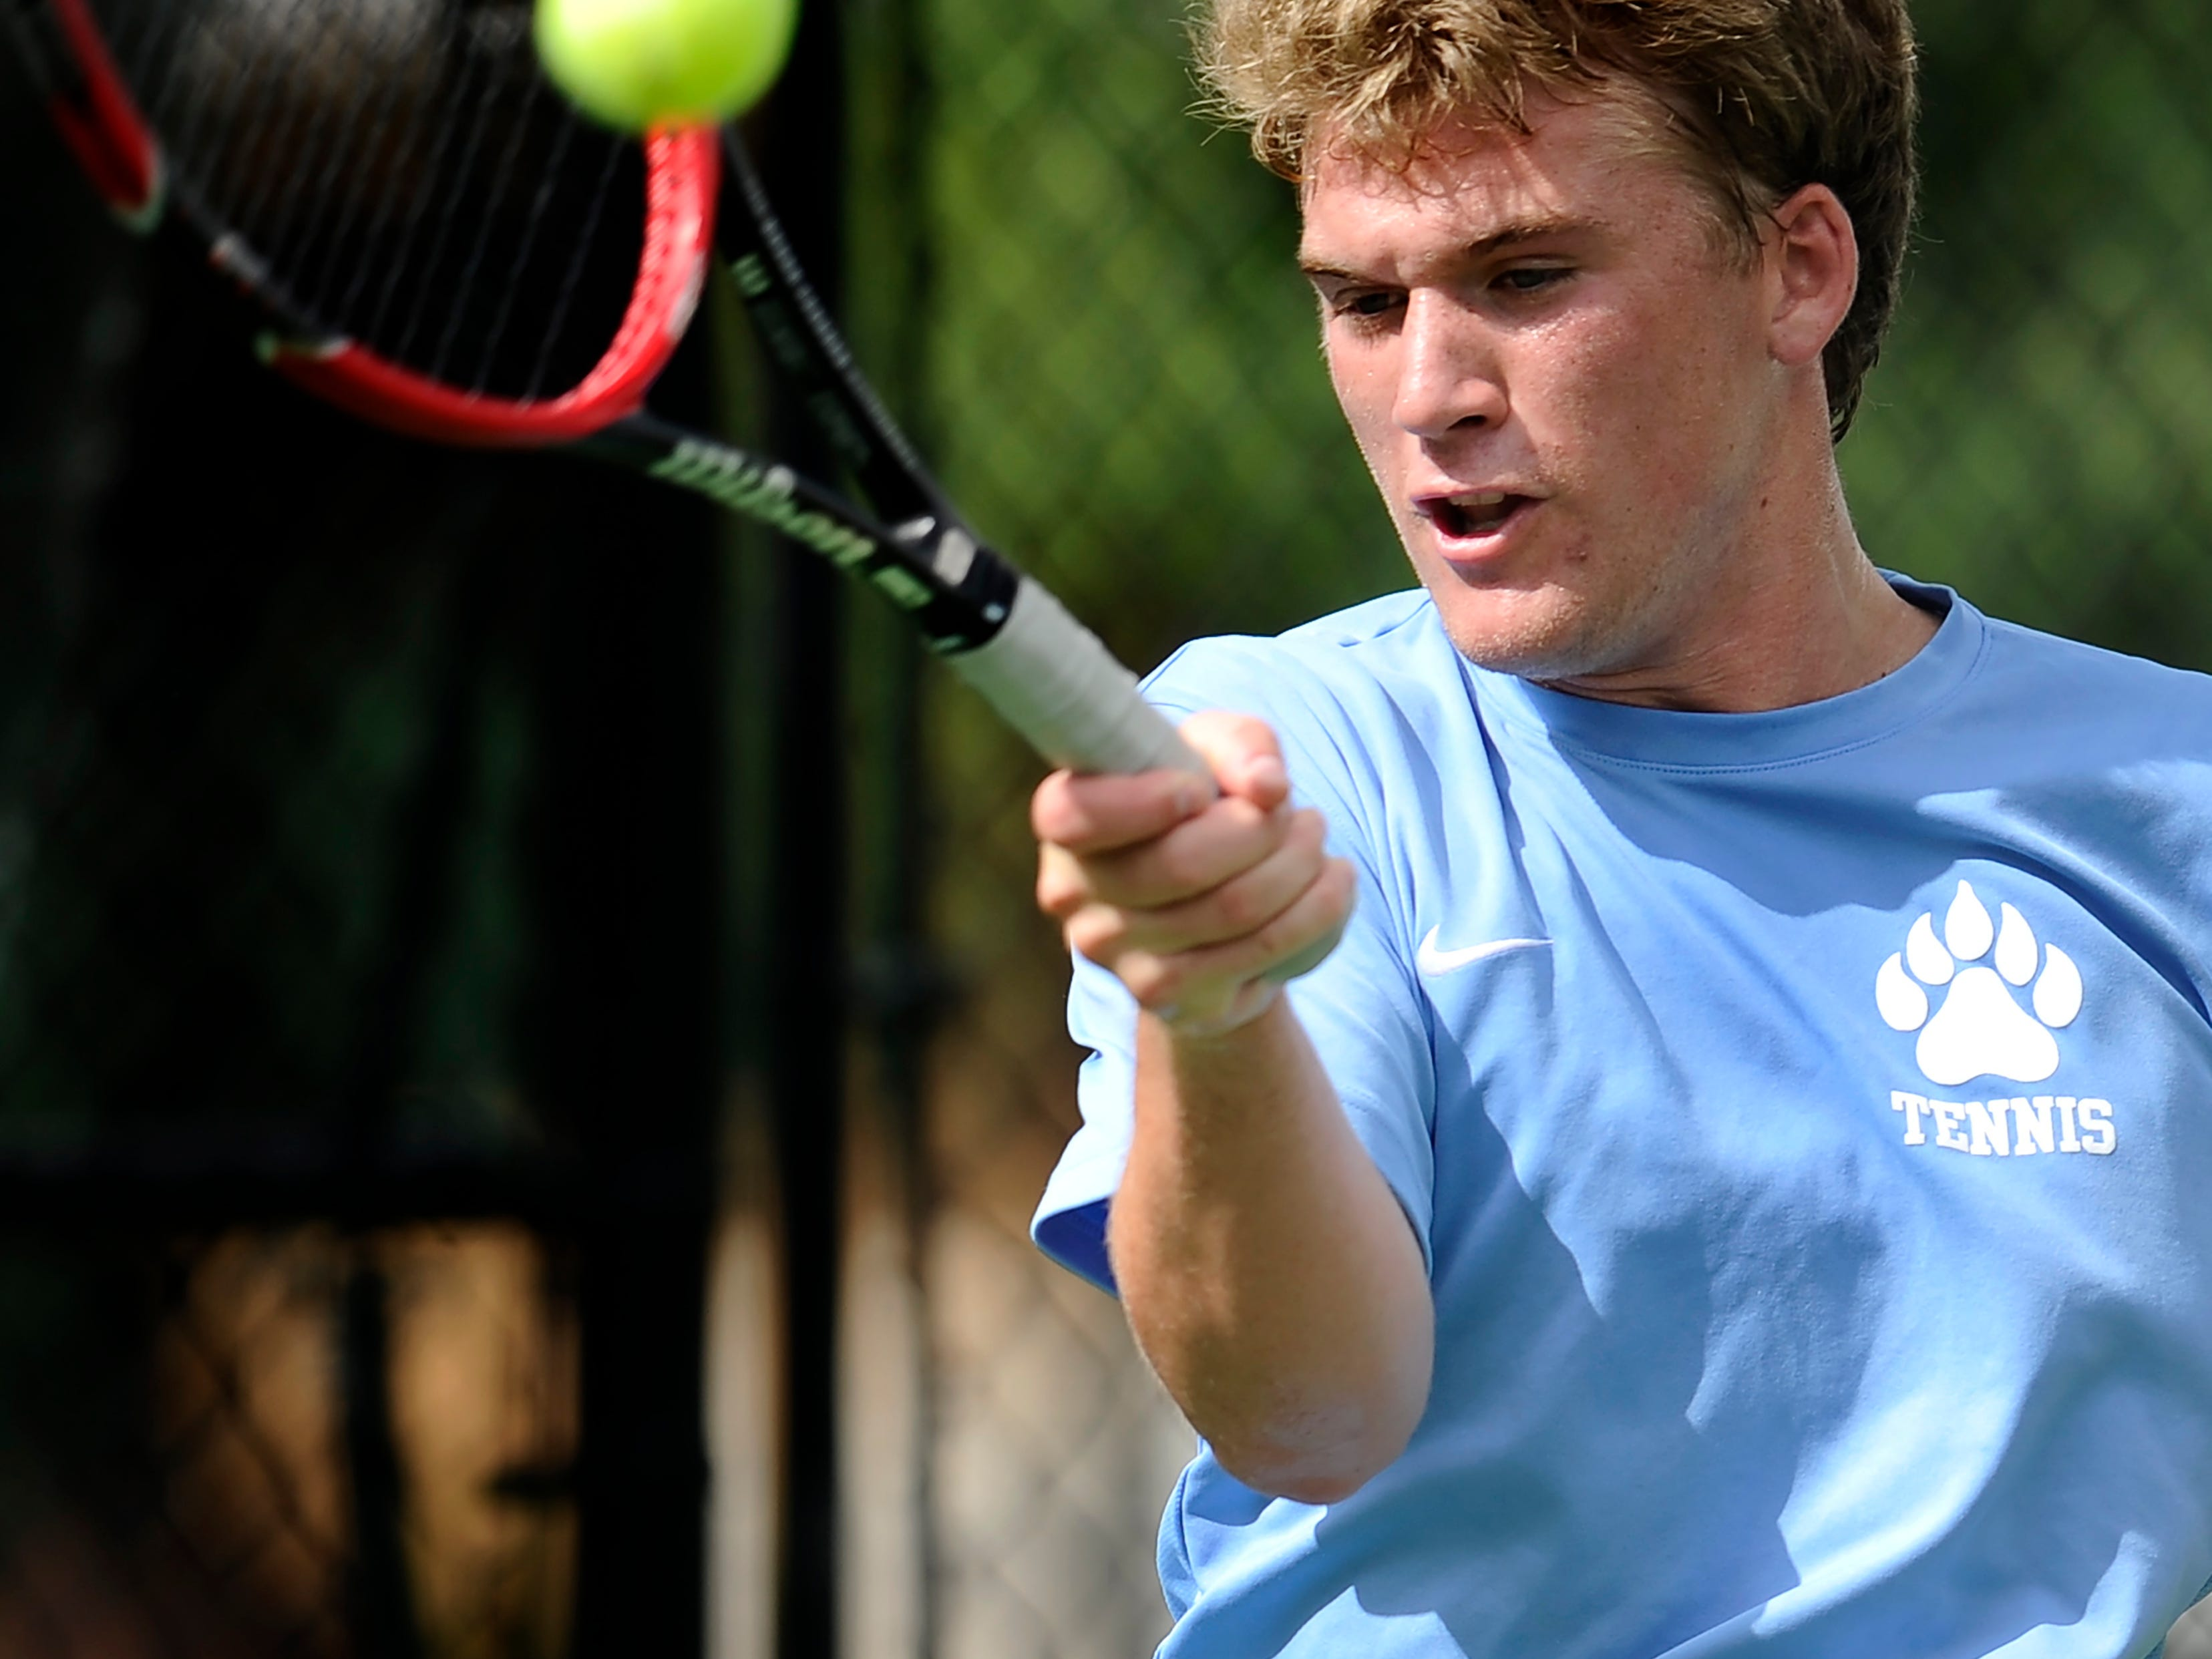 USJ's Hollen Spencer of USJ returns a serve against Lebo Hunter of USN during their tennis match at Old Fort Park Tuesday in Murfreesboro.